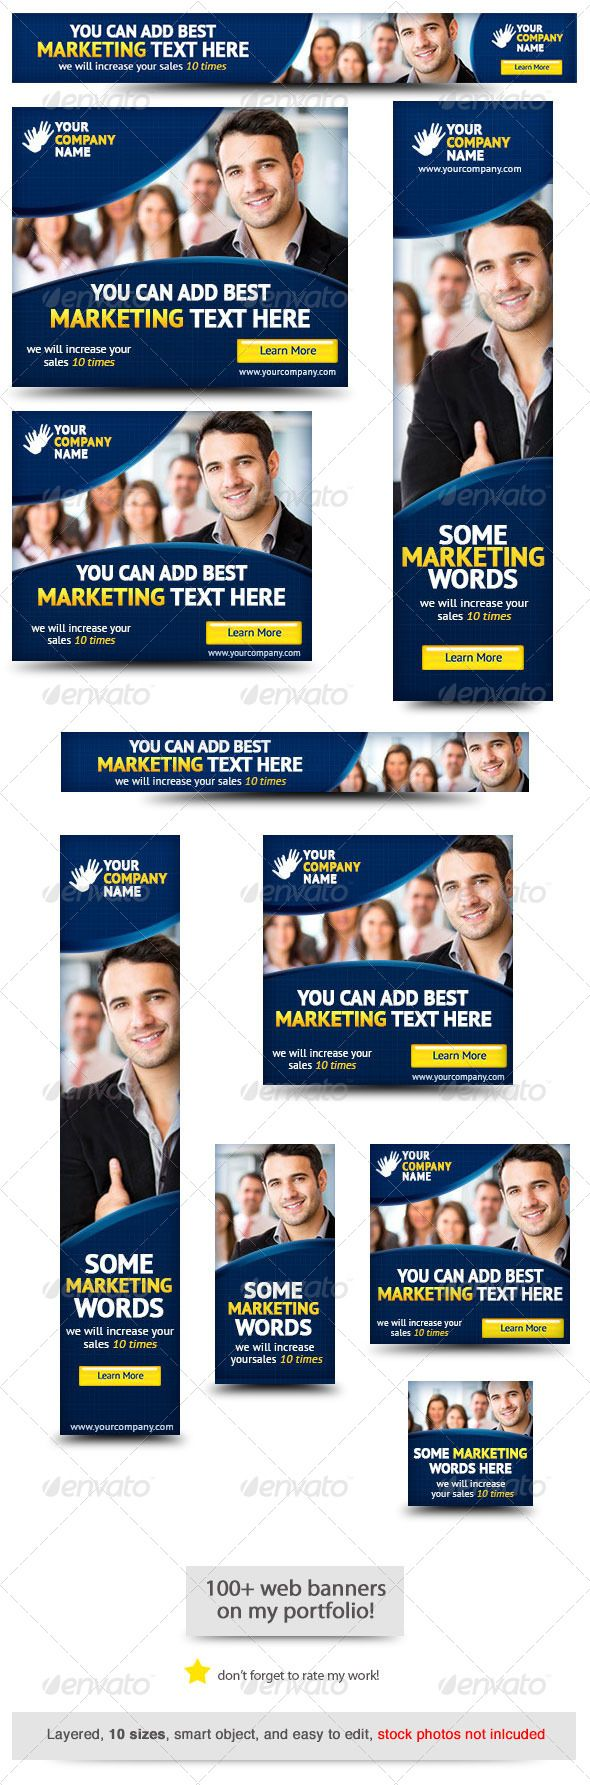 Corporate PSD Banner Ad Template 5 - Banners & Ads Web Template PSD. Download here: http://graphicriver.net/item/corporate-psd-banner-ad-template-5/4221076?s_rank=88&ref=yinkira